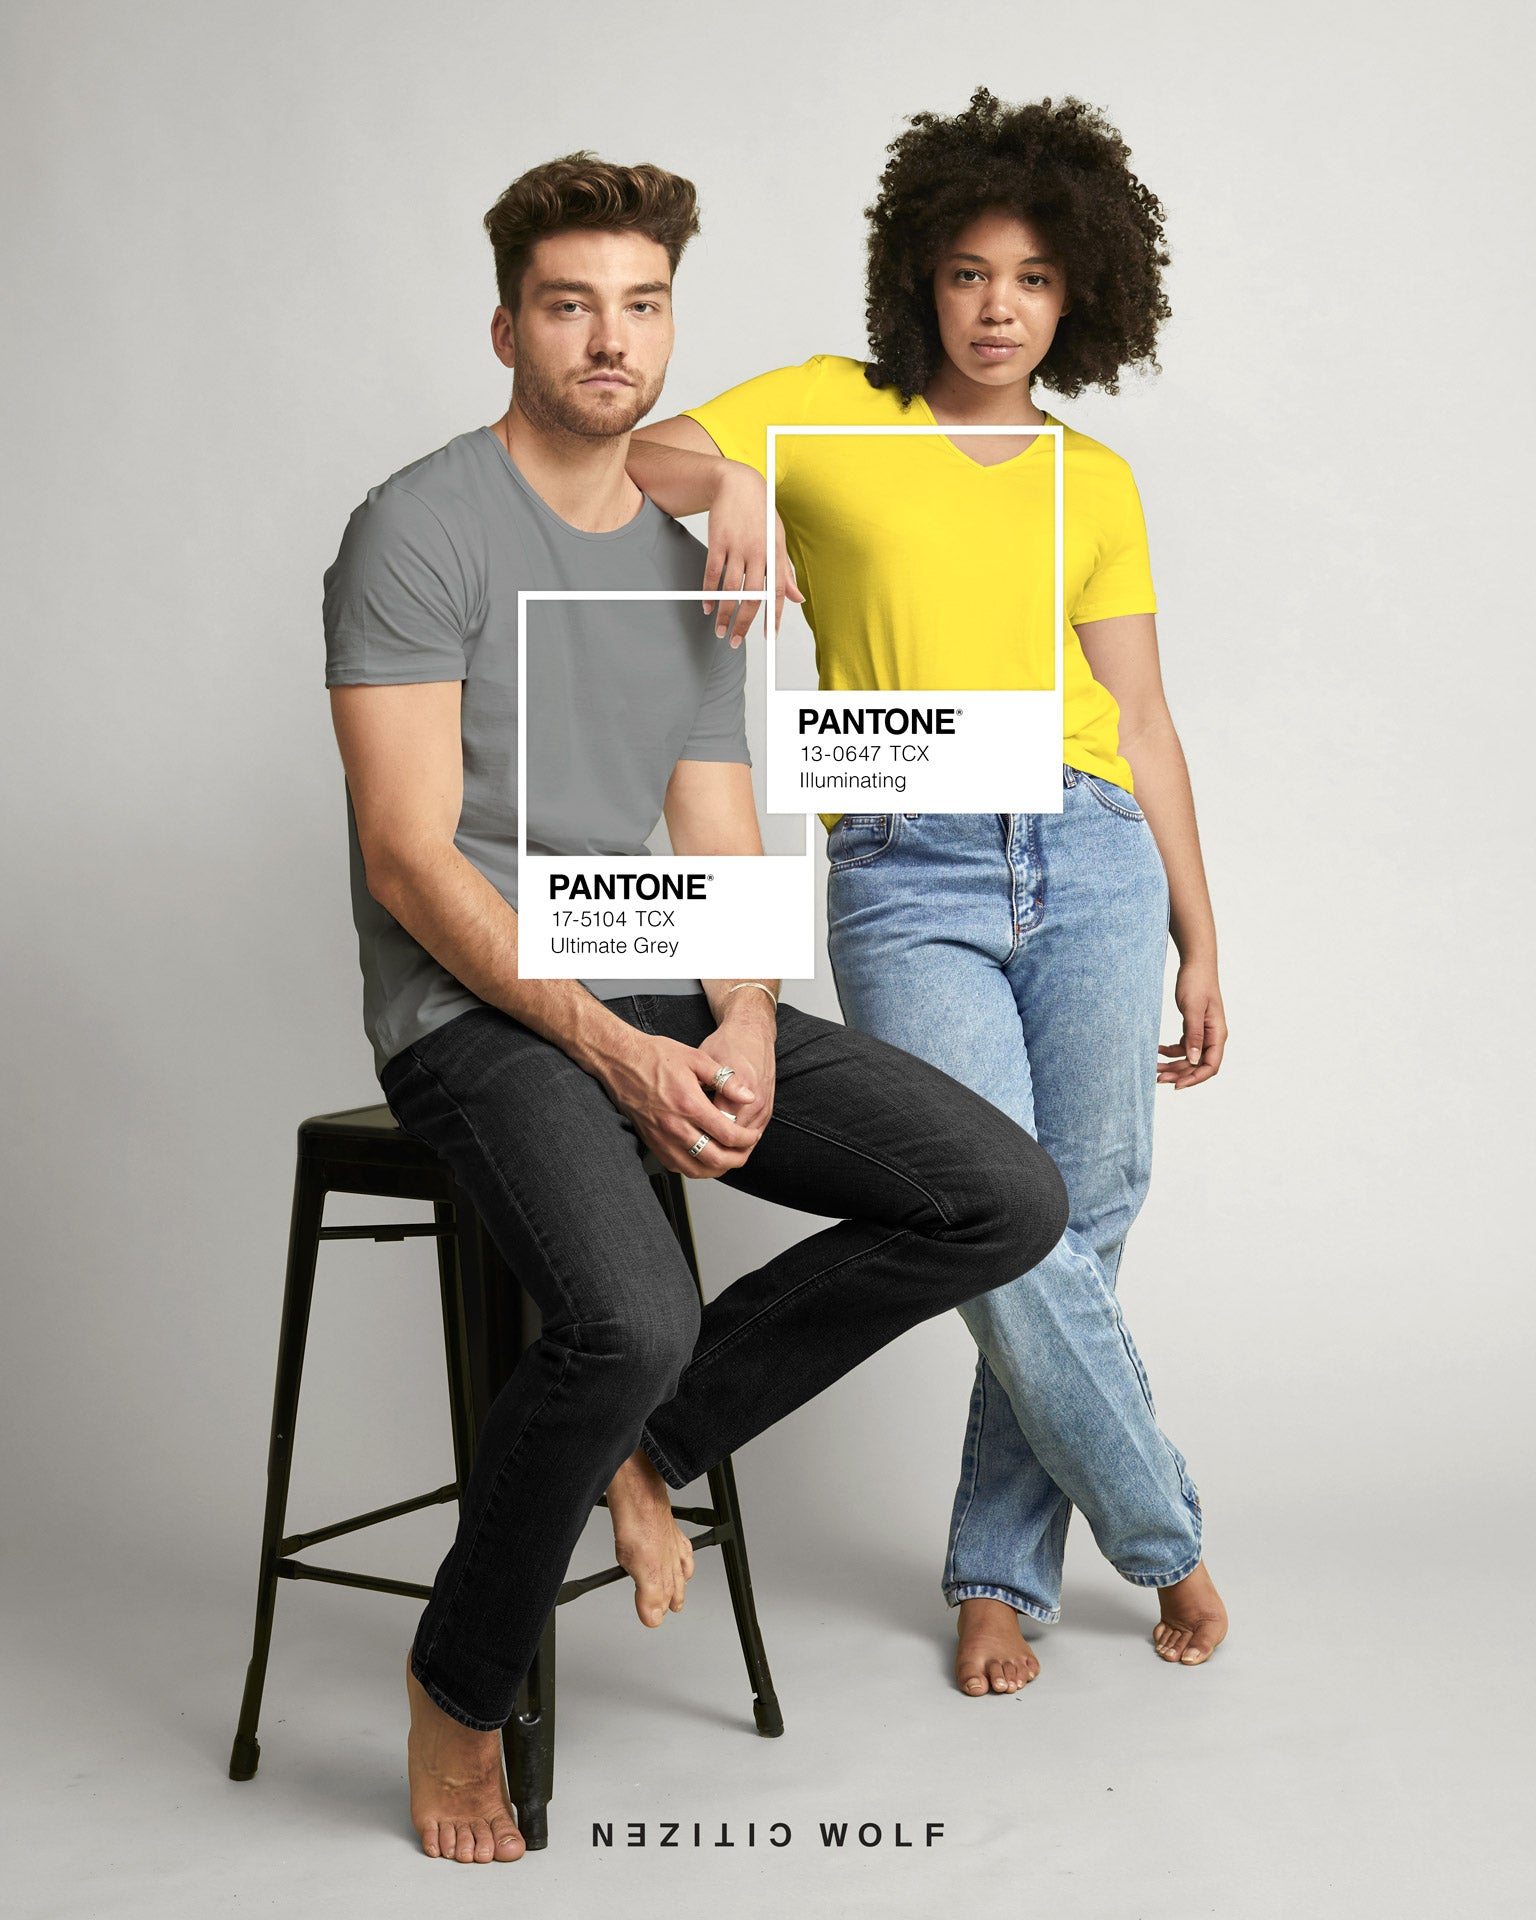 Citizen Wolf x Pantone COTY21 - Ultimate Grey & Illuminating Yellow Tshirts for him and her